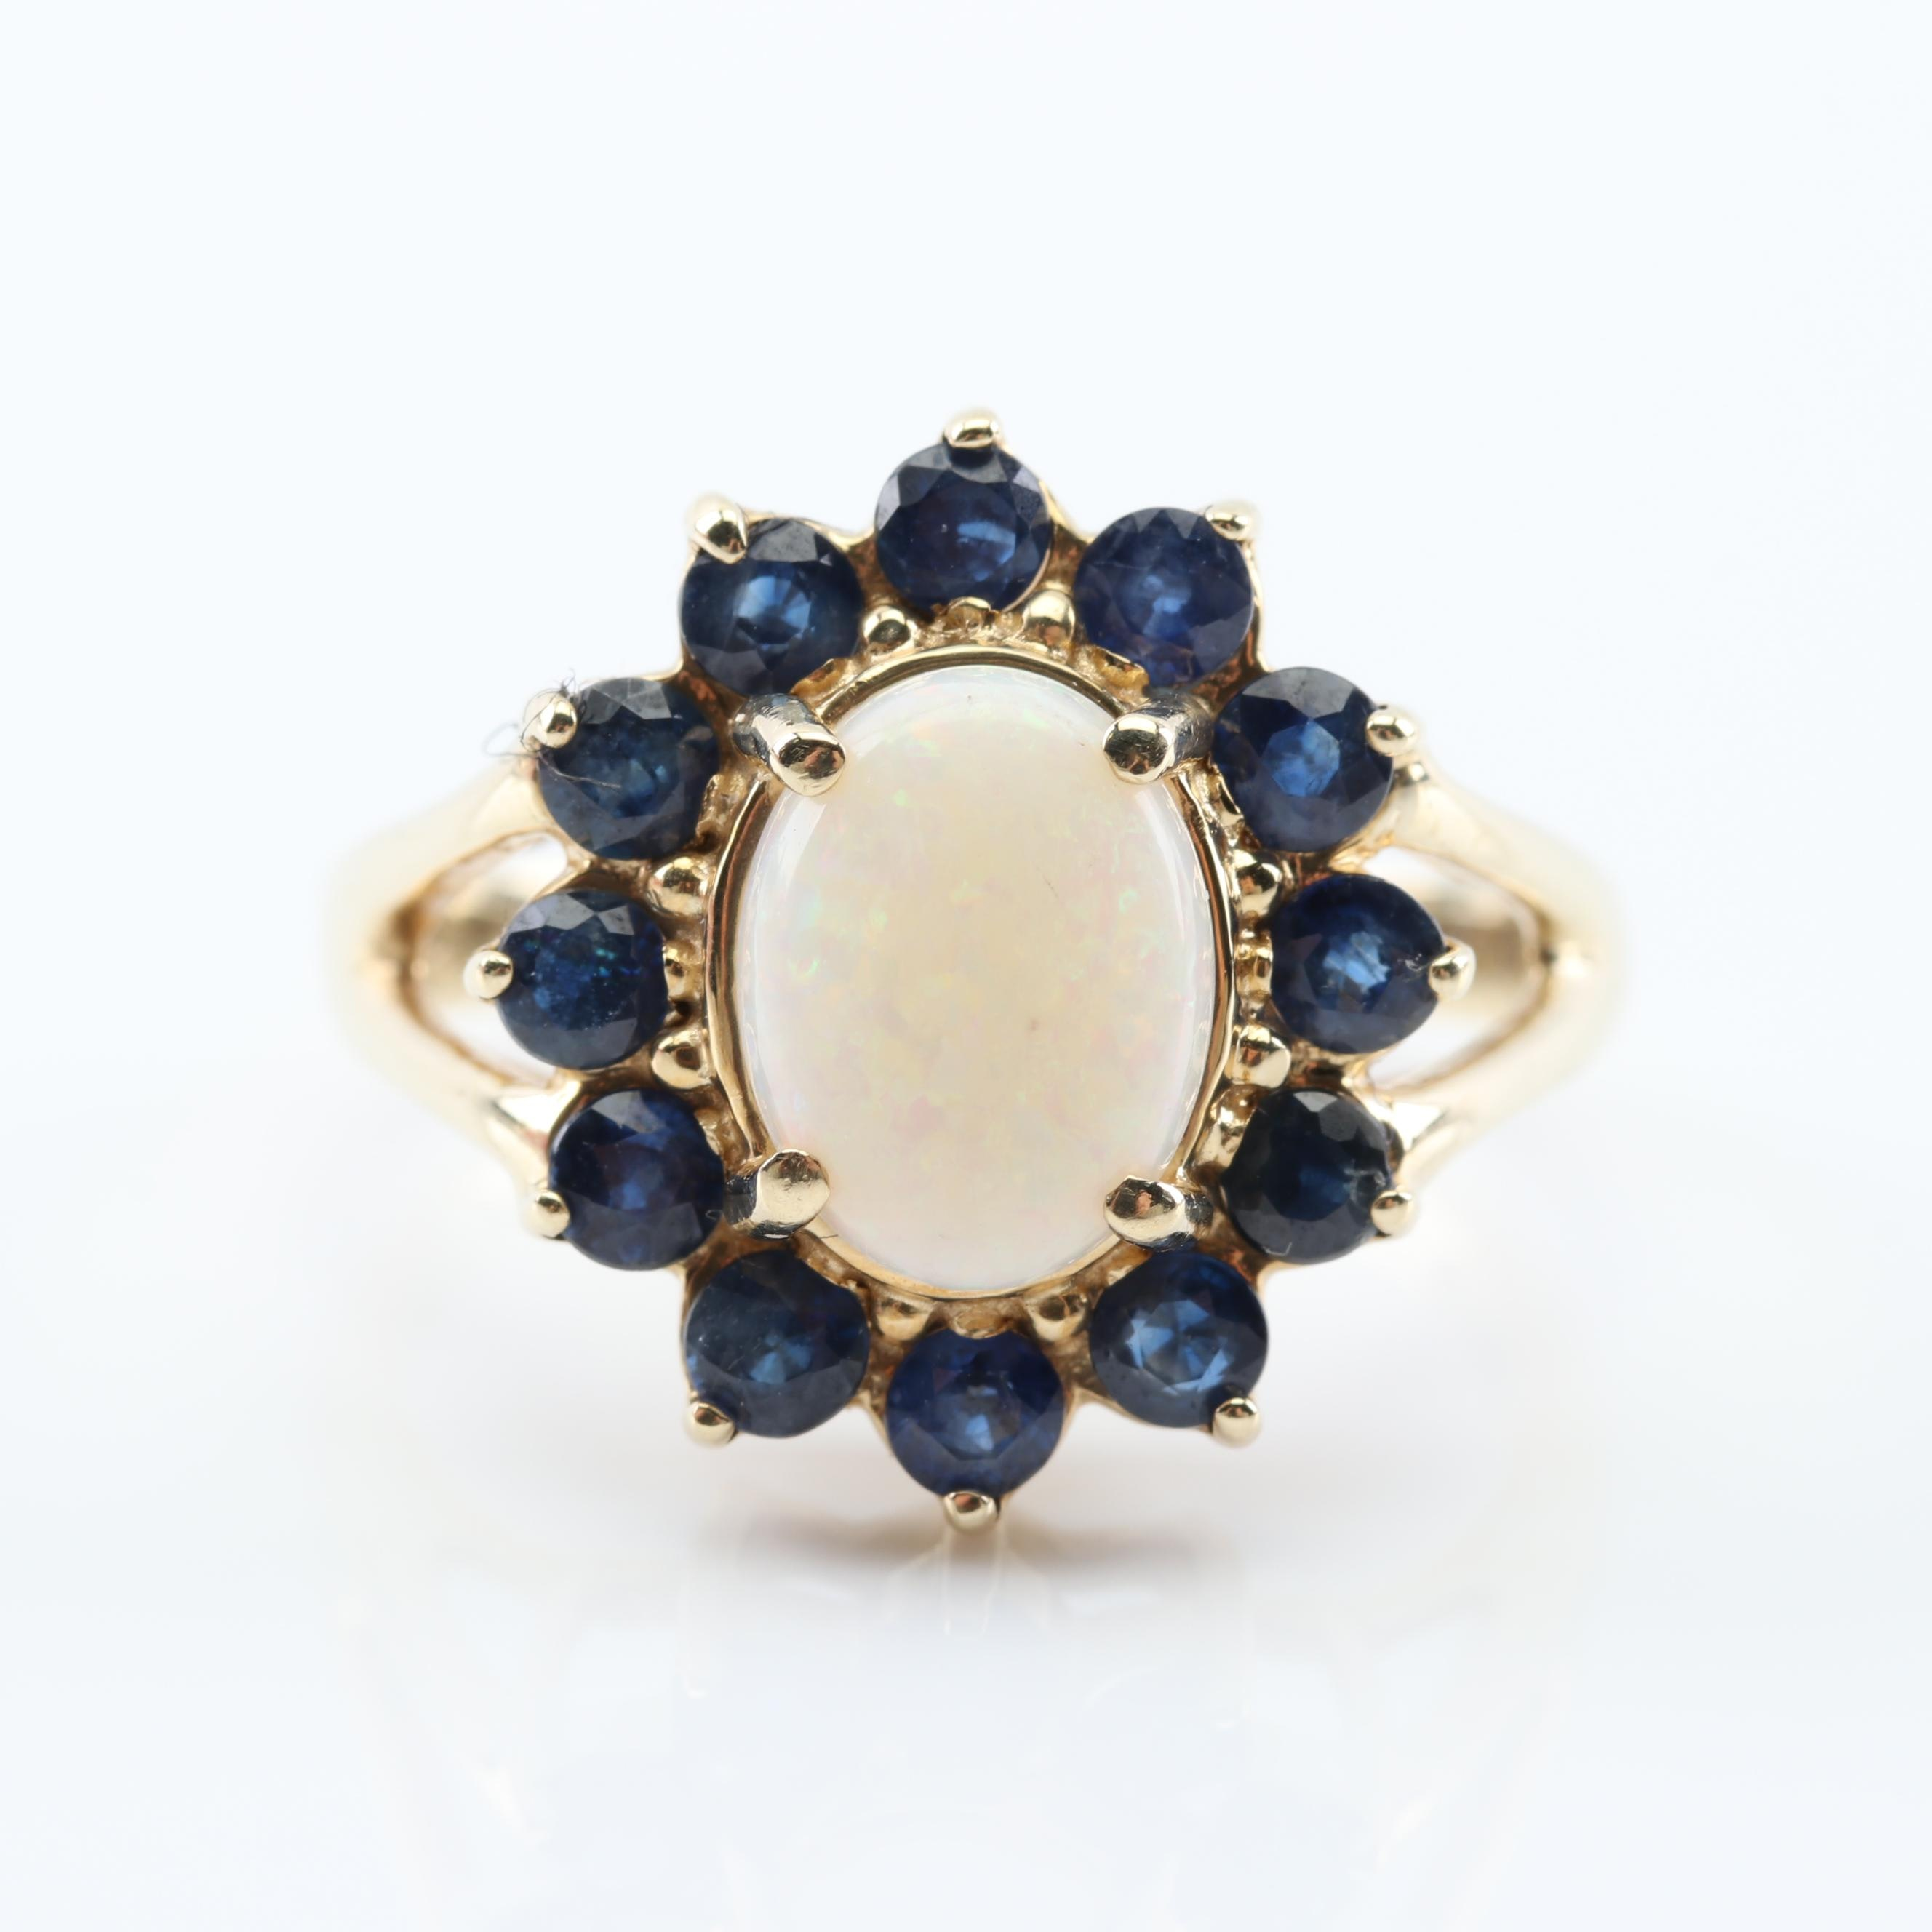 10K Yellow Gold Opal and Sapphire Halo Ring